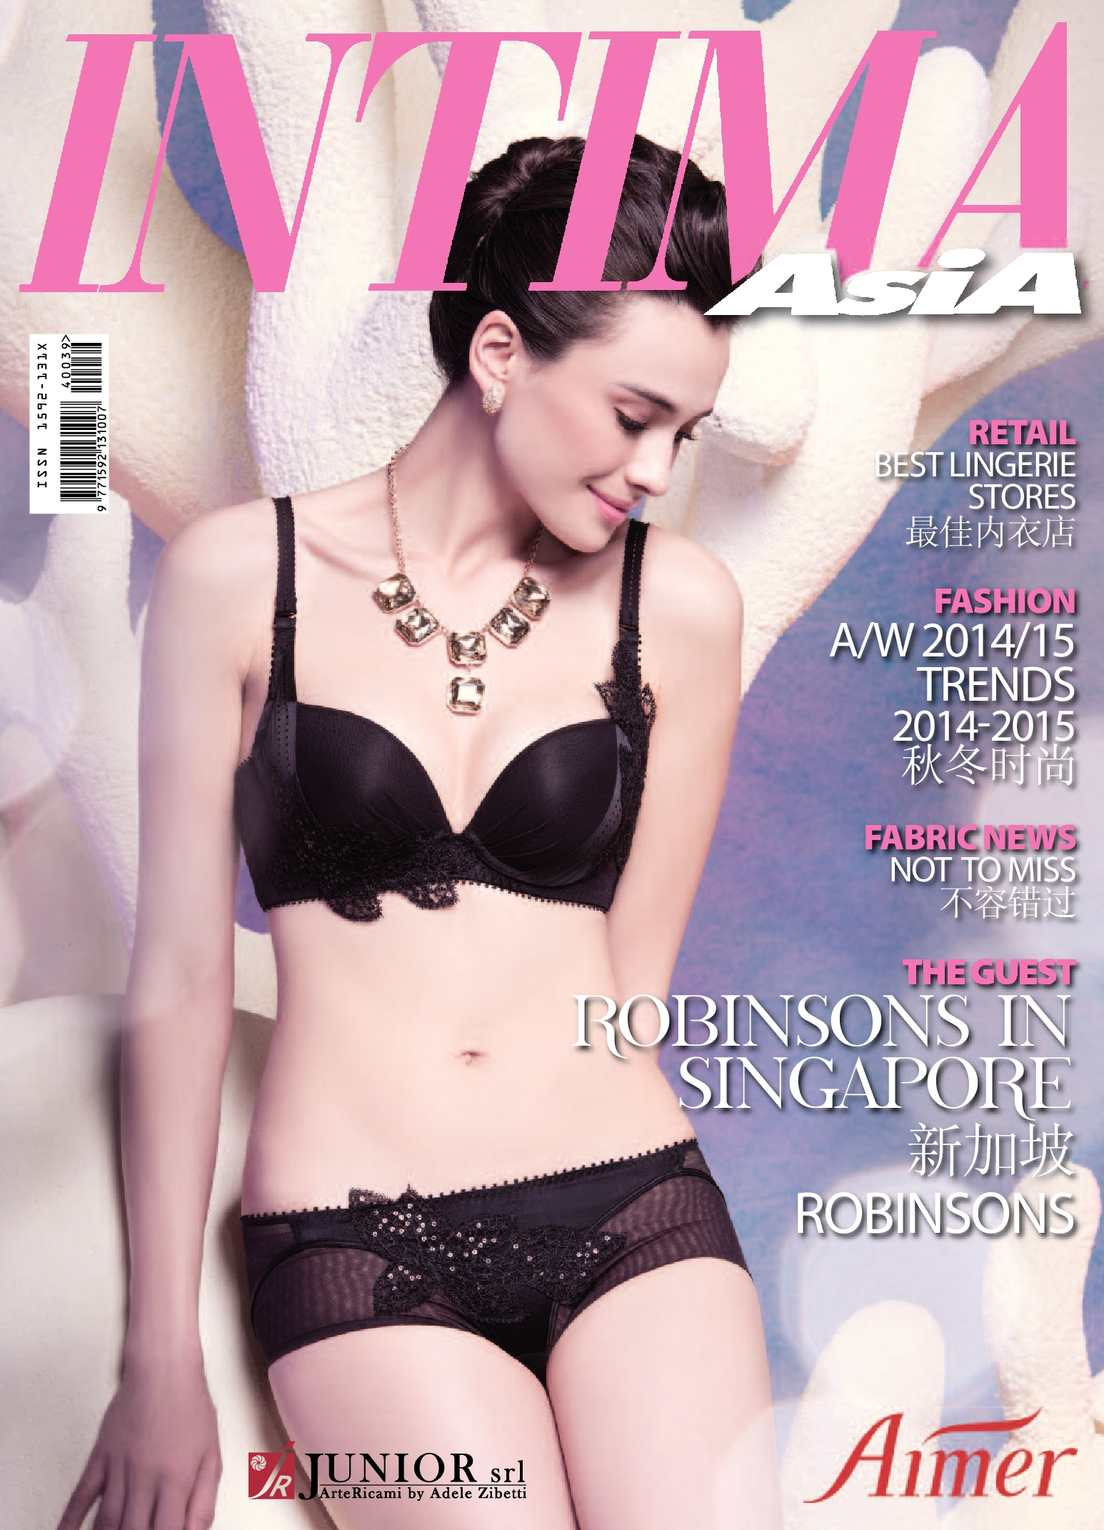 INTIMA ASIA MARCH 2014 ONLINE